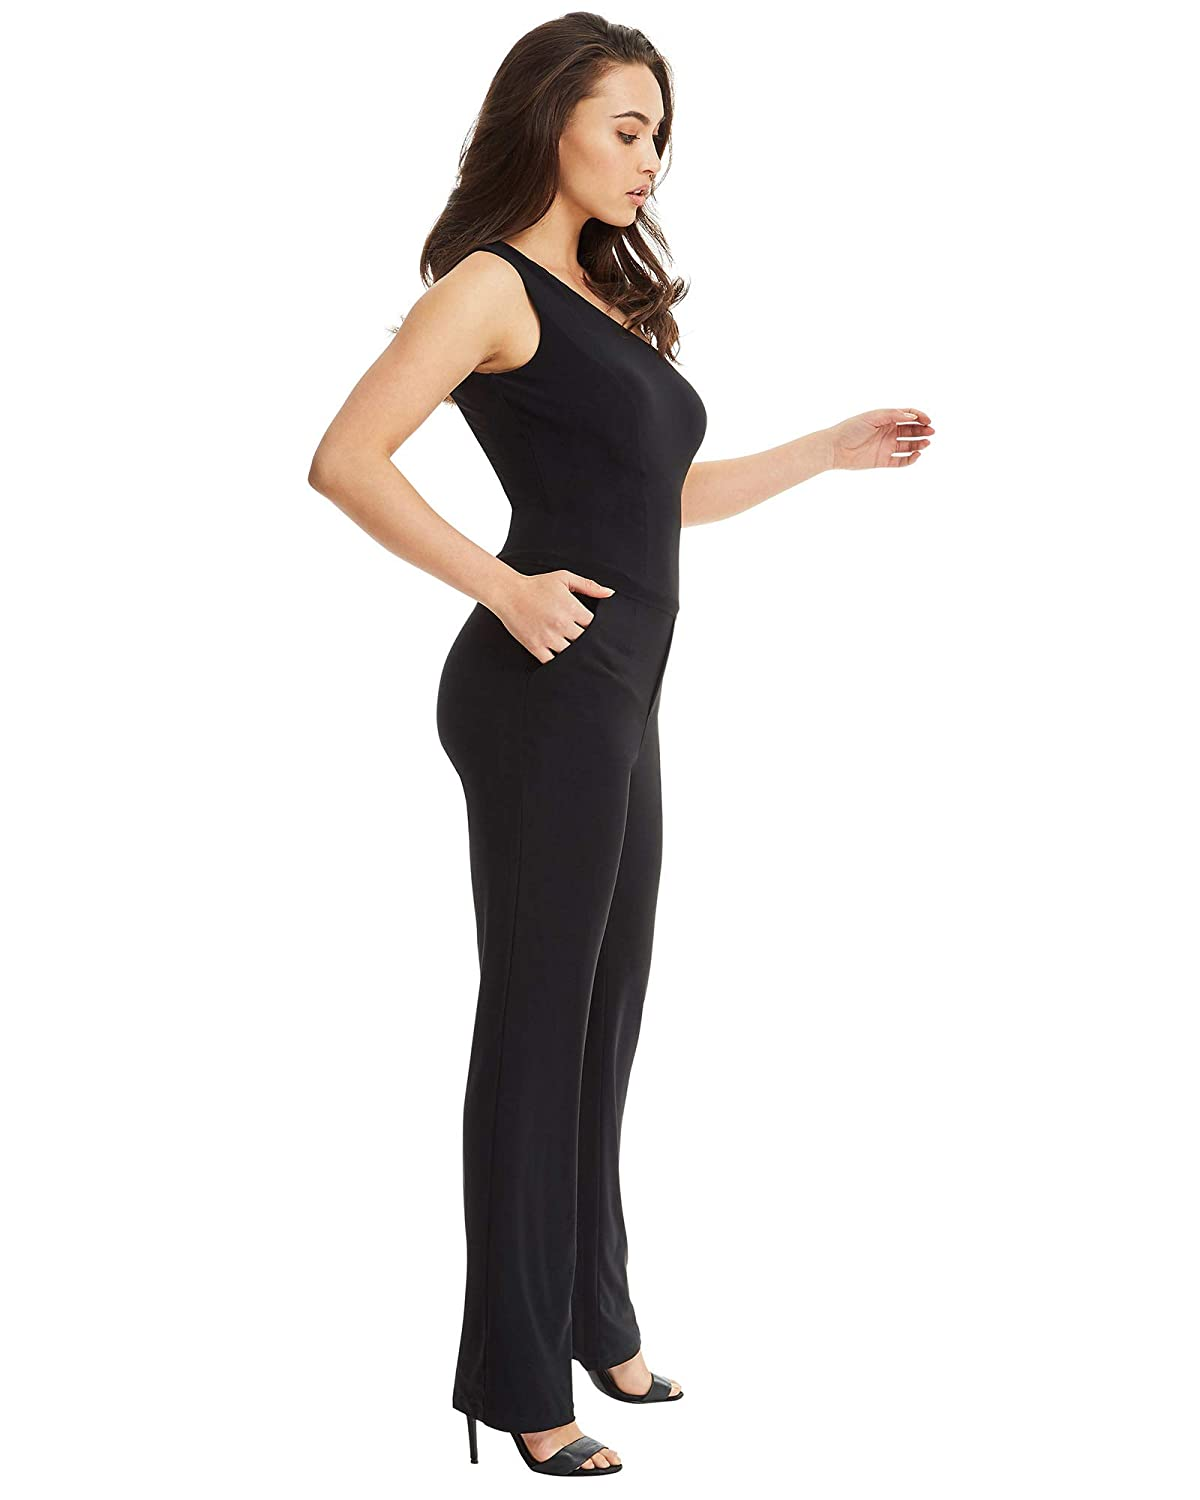 e31e4fe5c2e5 SKIVA One Shoulder Jumpsuit - Black  Amazon.com.au  Fashion